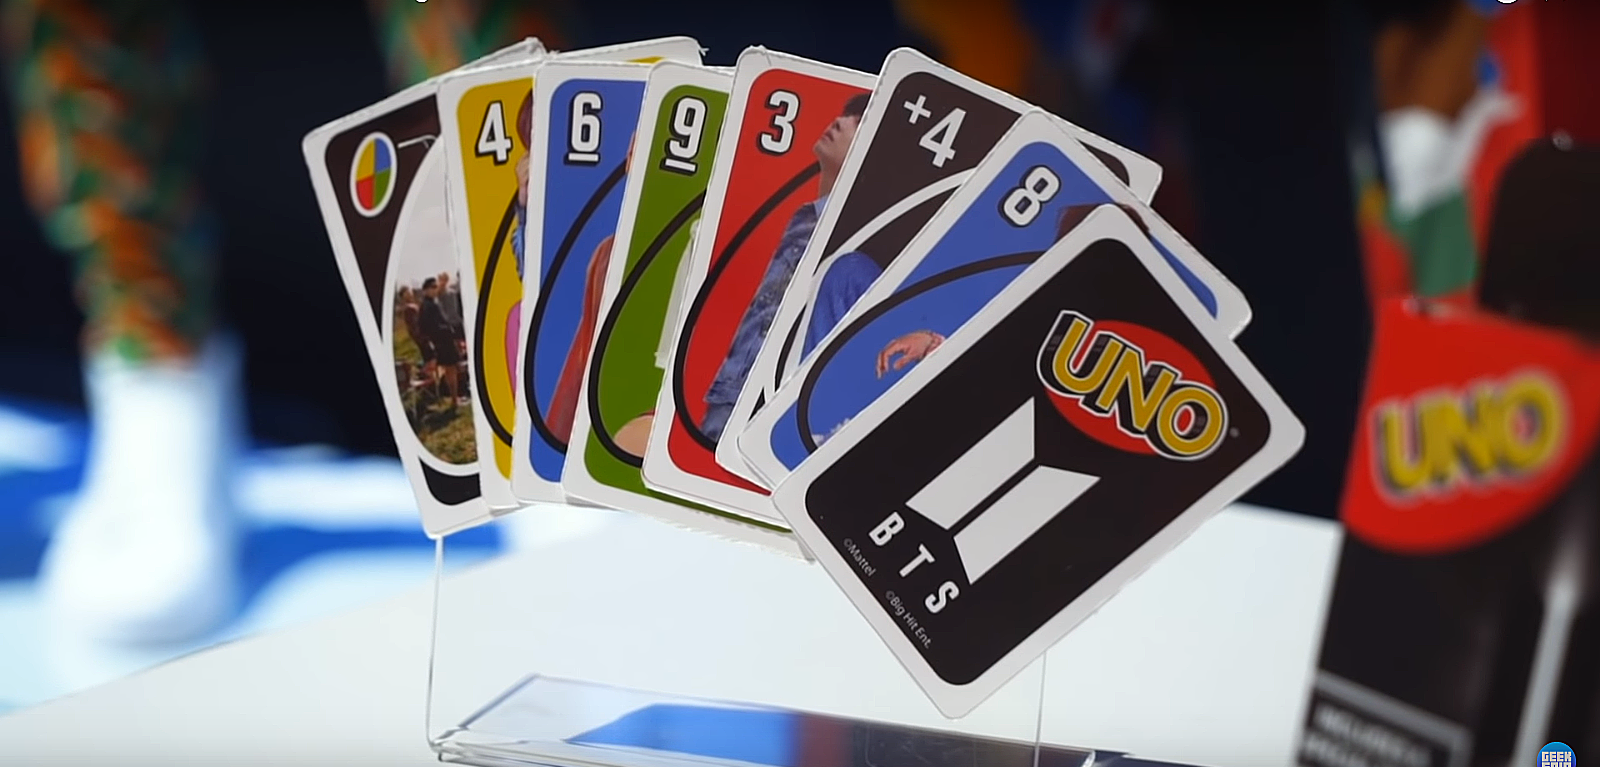 When did you last play UNO?